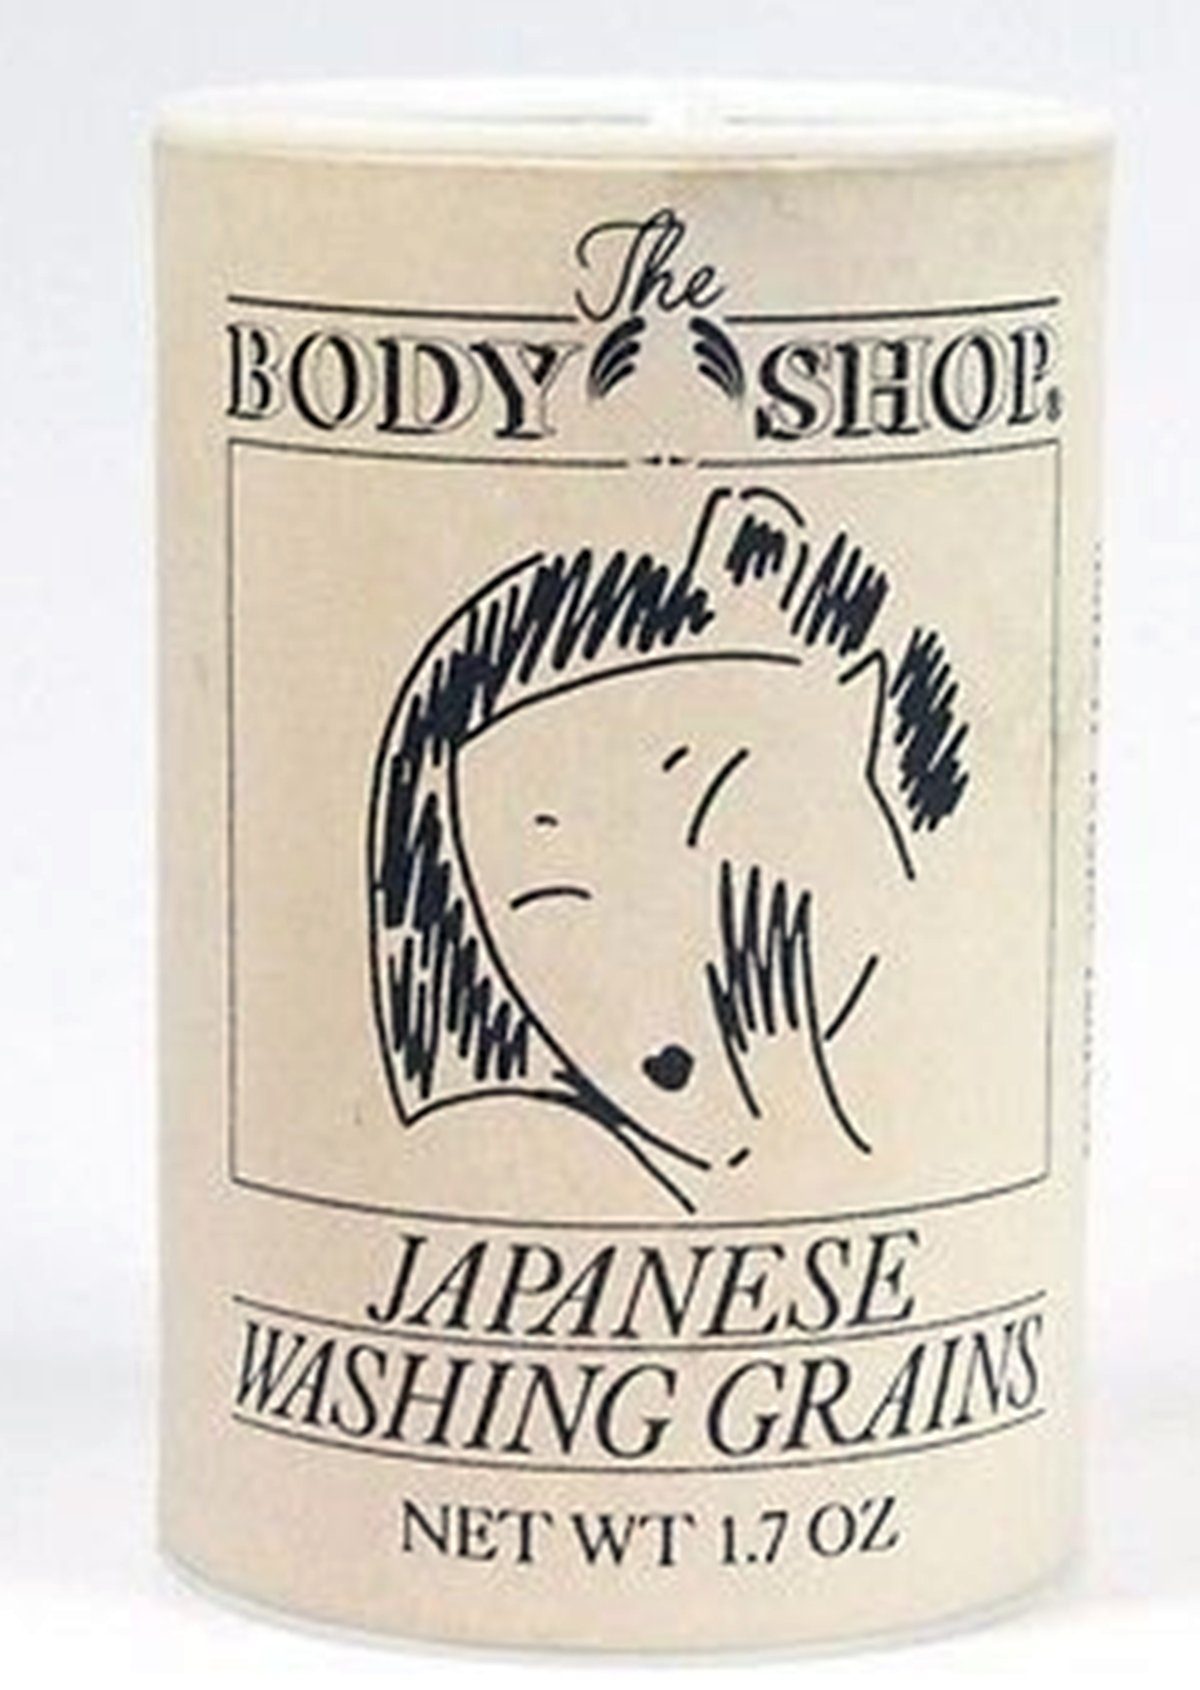 5 1 10 Things We All Bought From The Body Shop In The 1980s